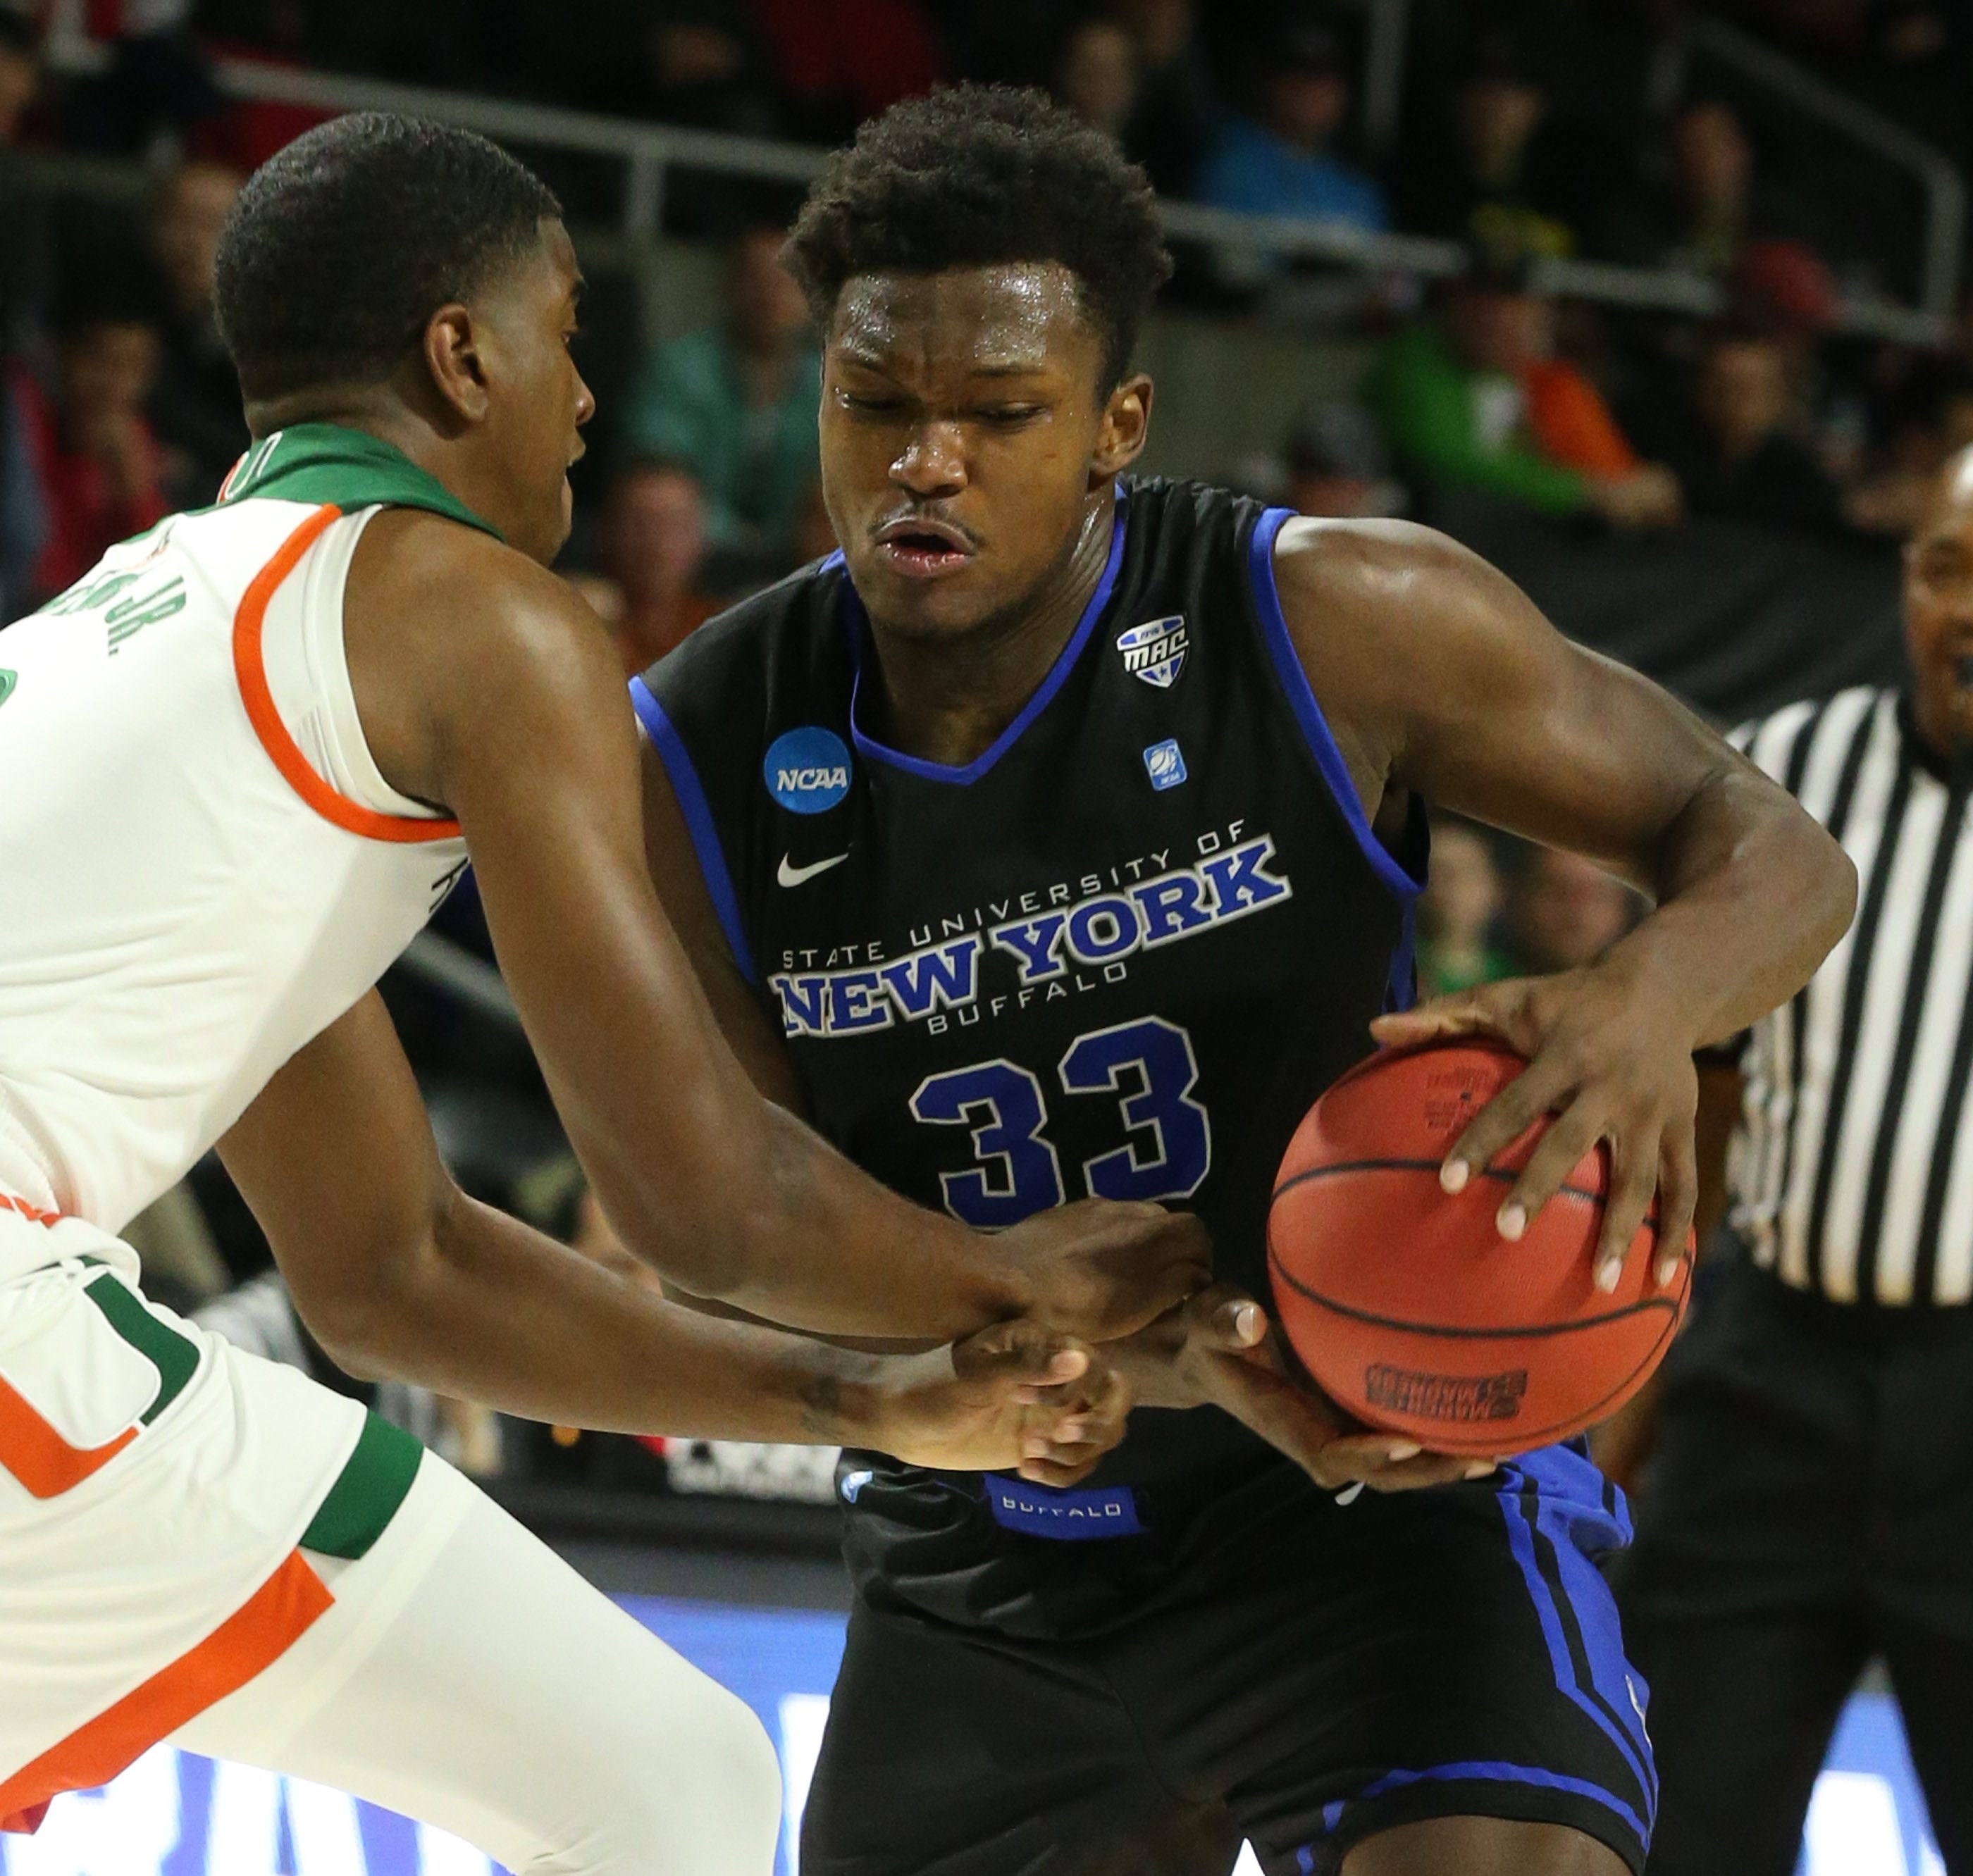 Freshman forward Nick Perkins scores two of his career-high 20 points in the first half of UB's NCAA loss to Miami.